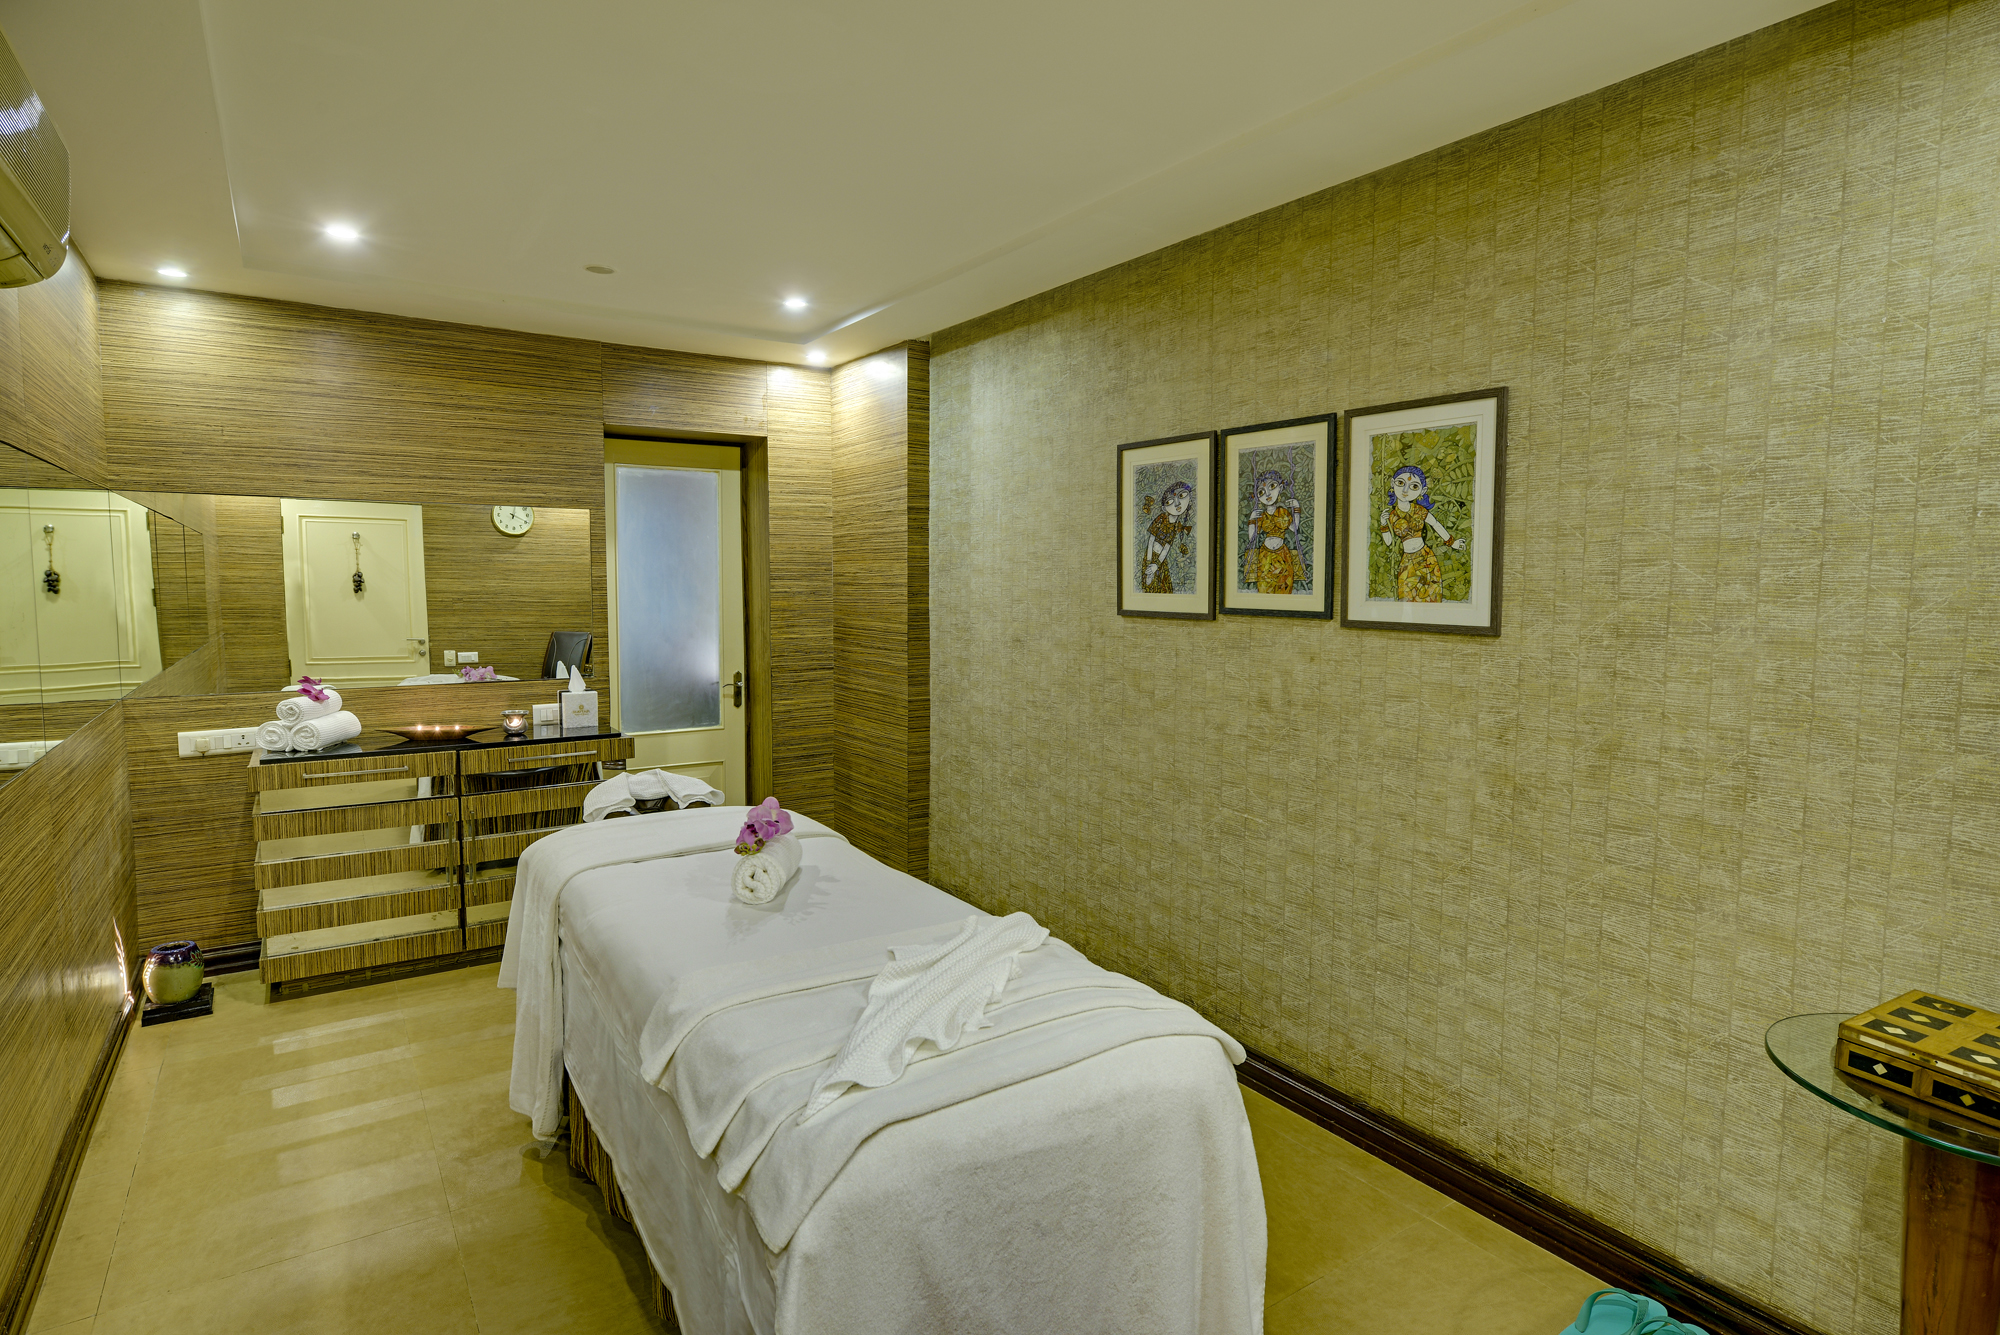 MAYFAIR SPA